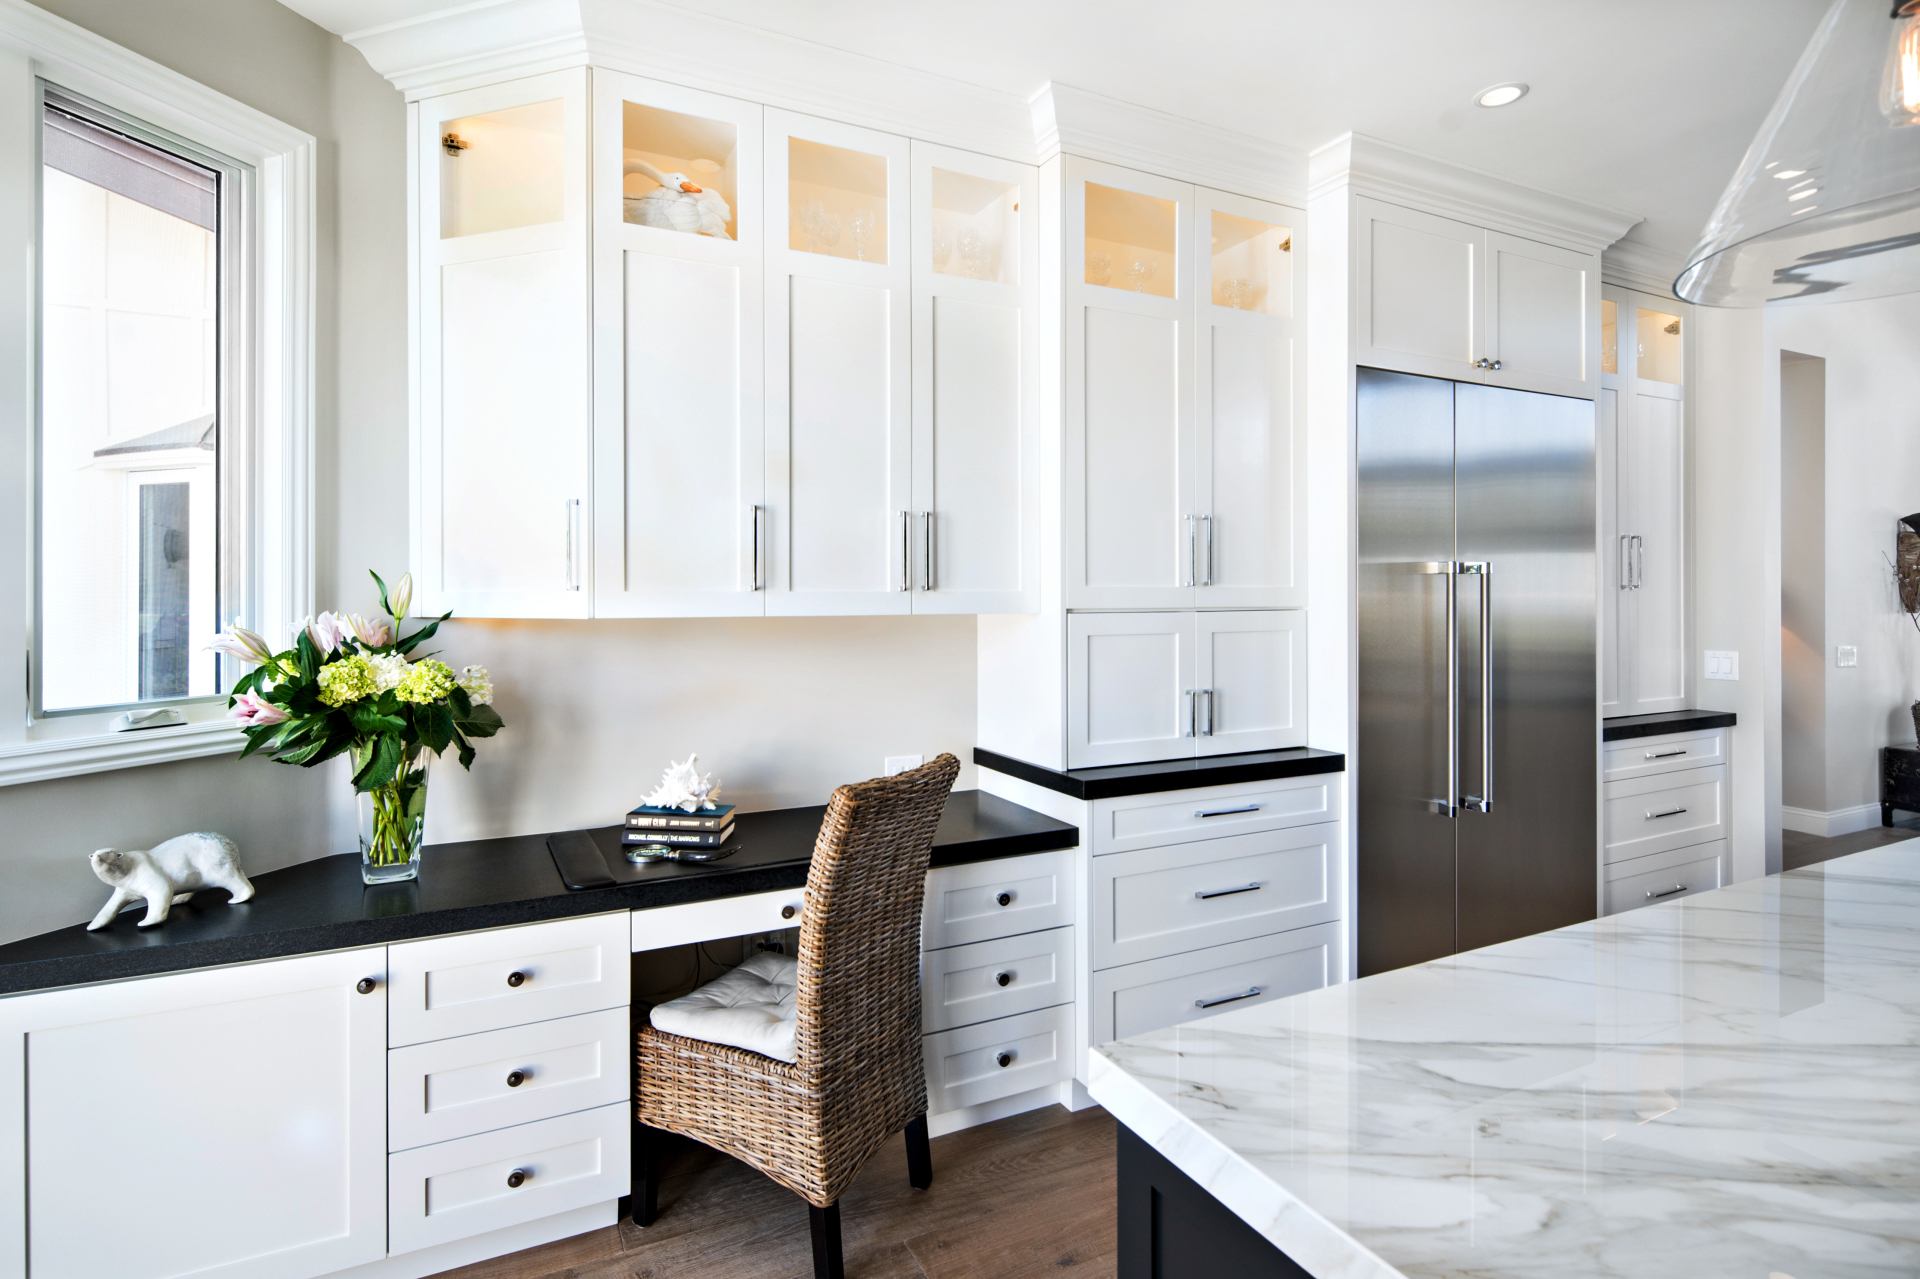 SMART TECHNOLOGY IN HOME REMODELING